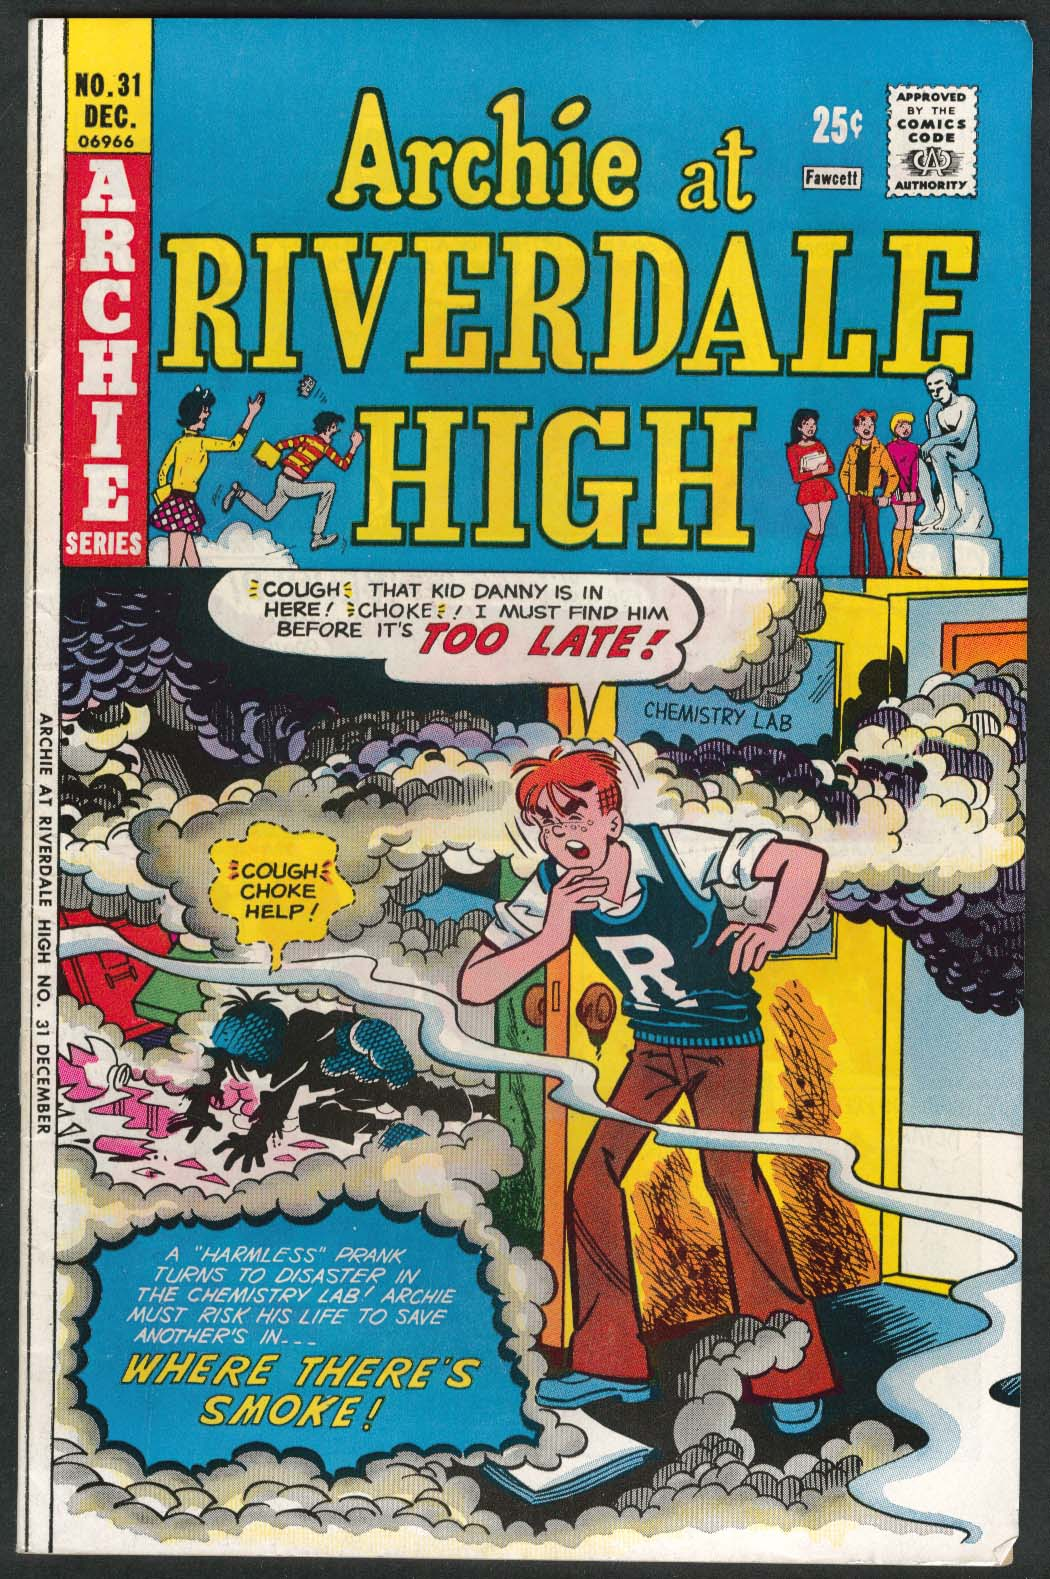 ARCHIE at RIVERDALE HIGH #31 Archie series comic book 12 1975